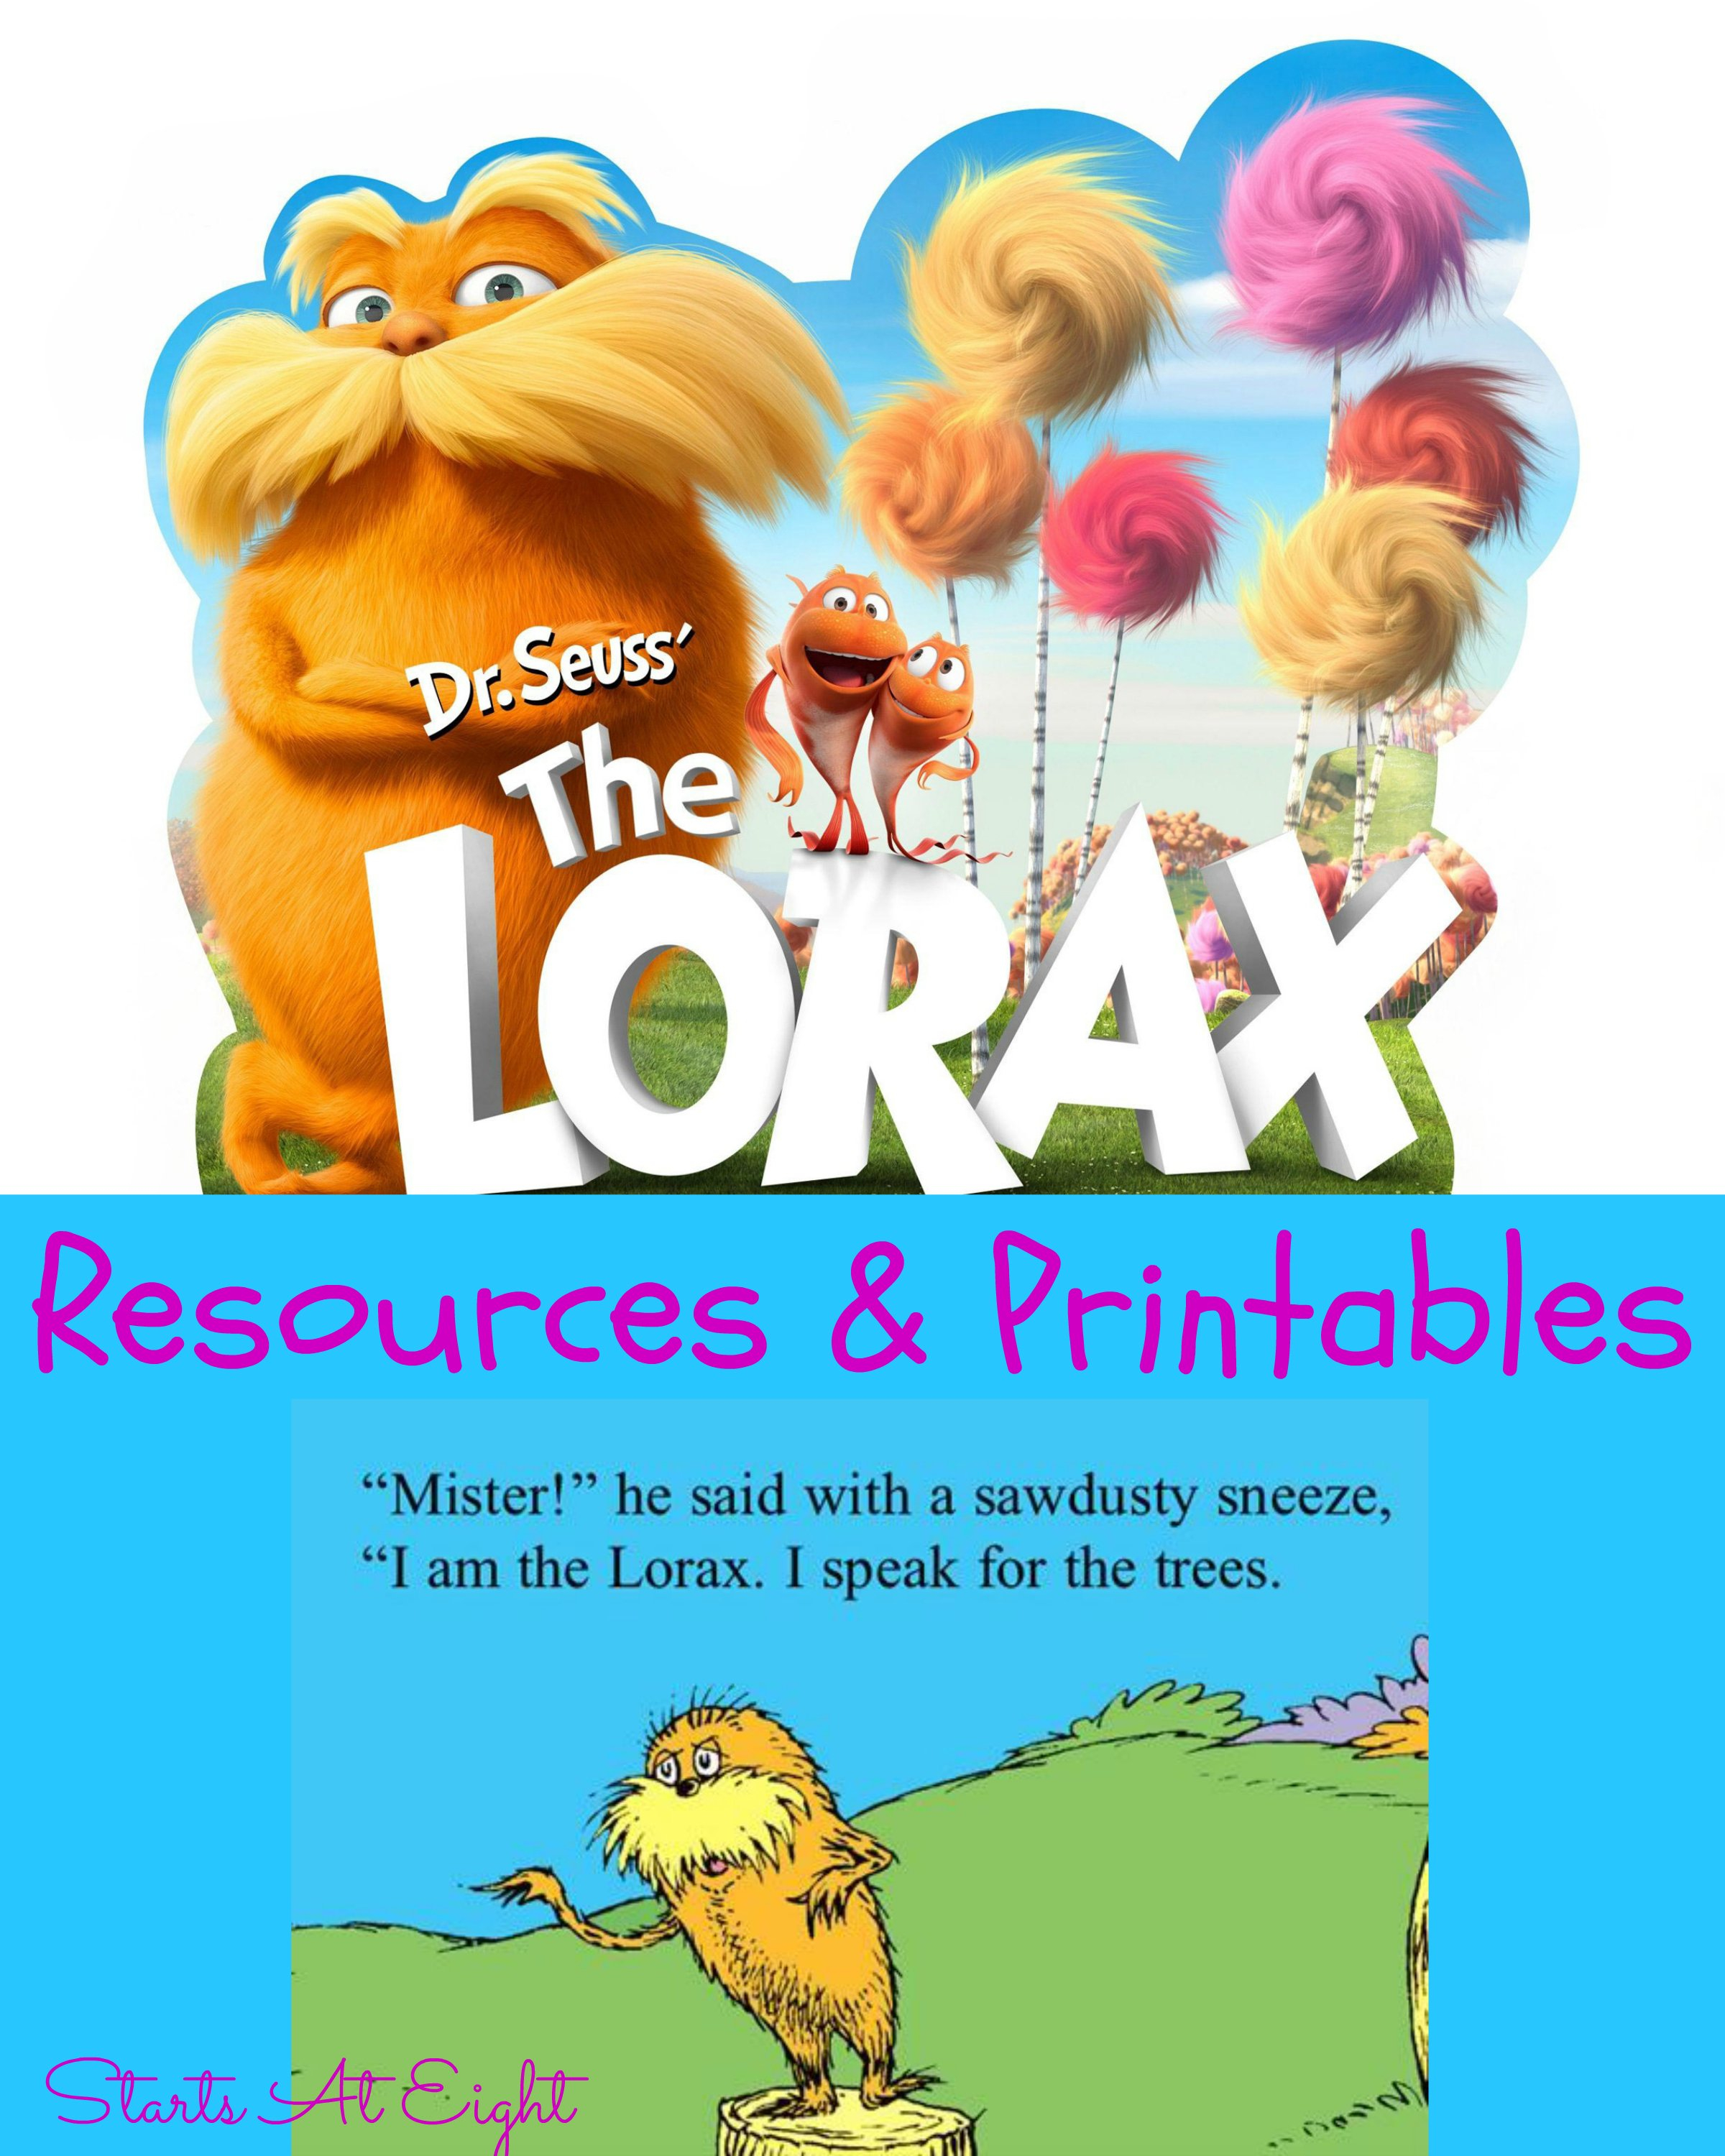 Dr Seuss's The Lorax Resources  Printables  Startsateight Pertaining To The Lorax By Dr Seuss Worksheet